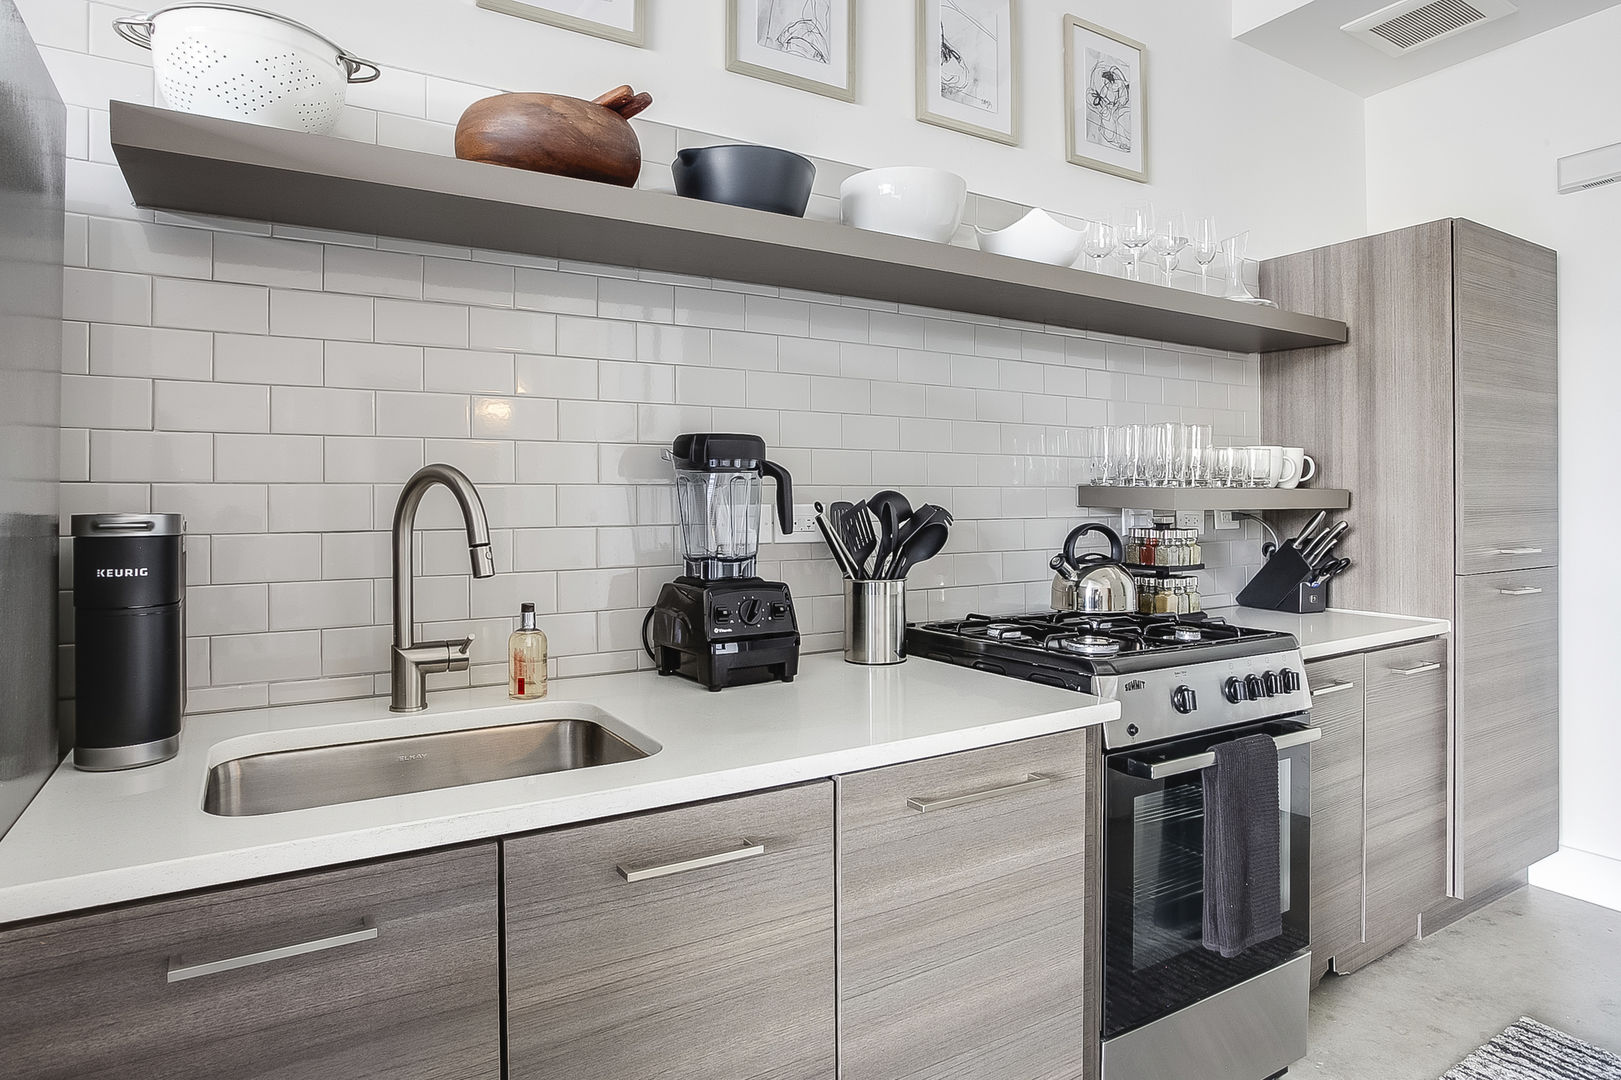 The kitchen of this Ponce City Market rental with modern appliances and a deep sink.